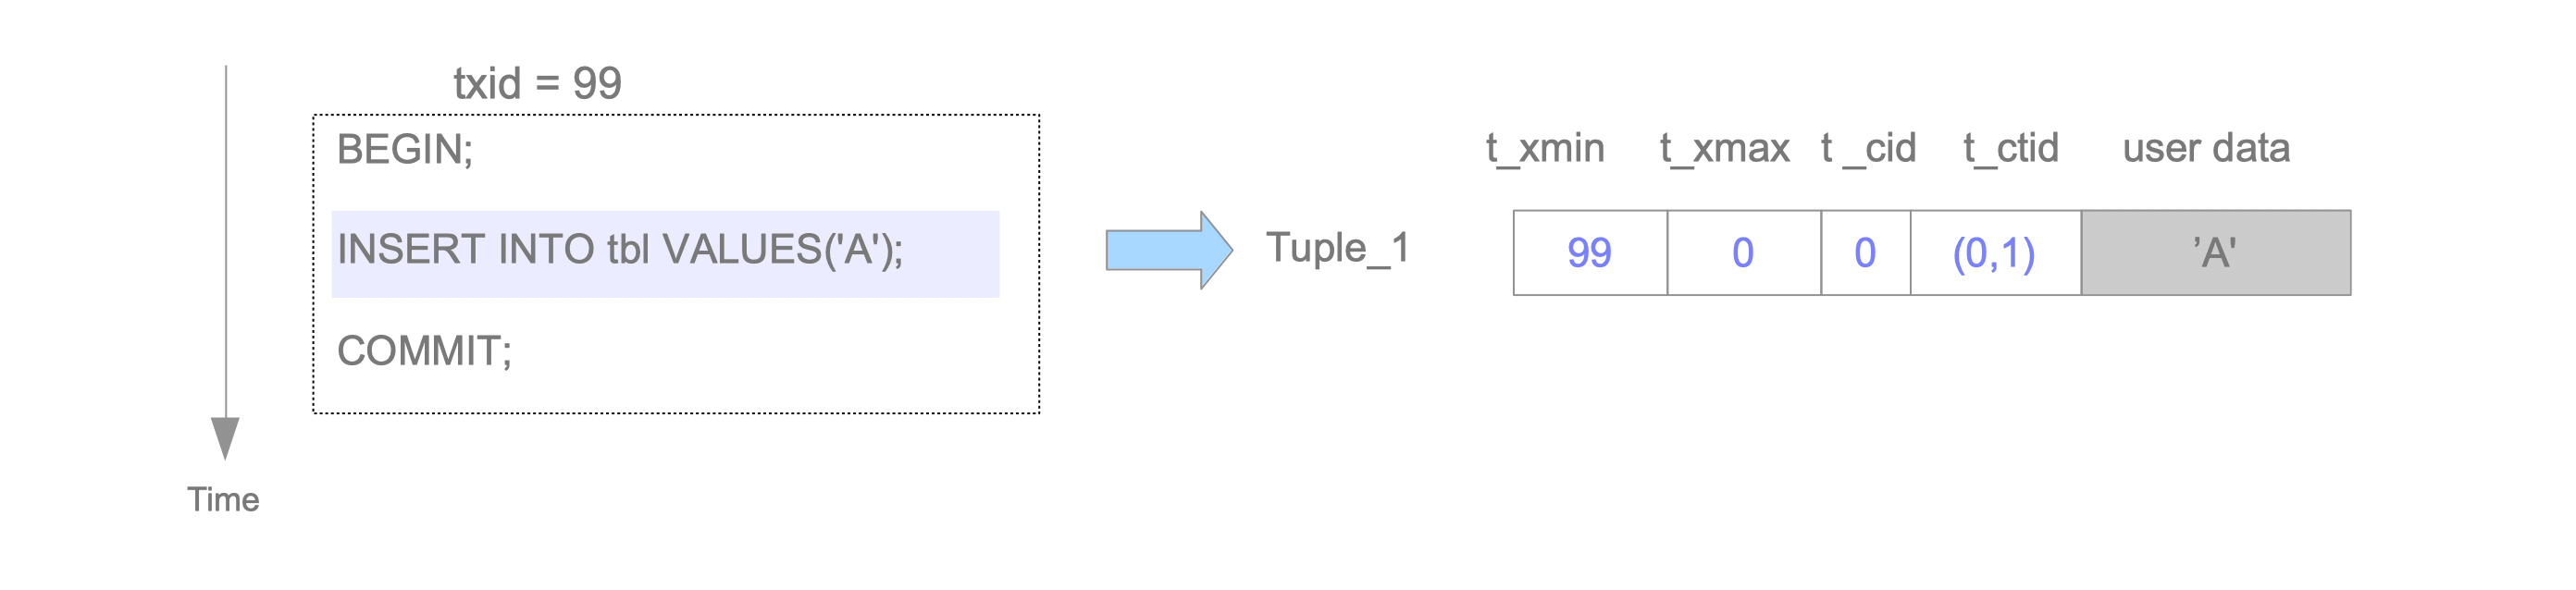 Fig. 5.4. Tuple insertion.